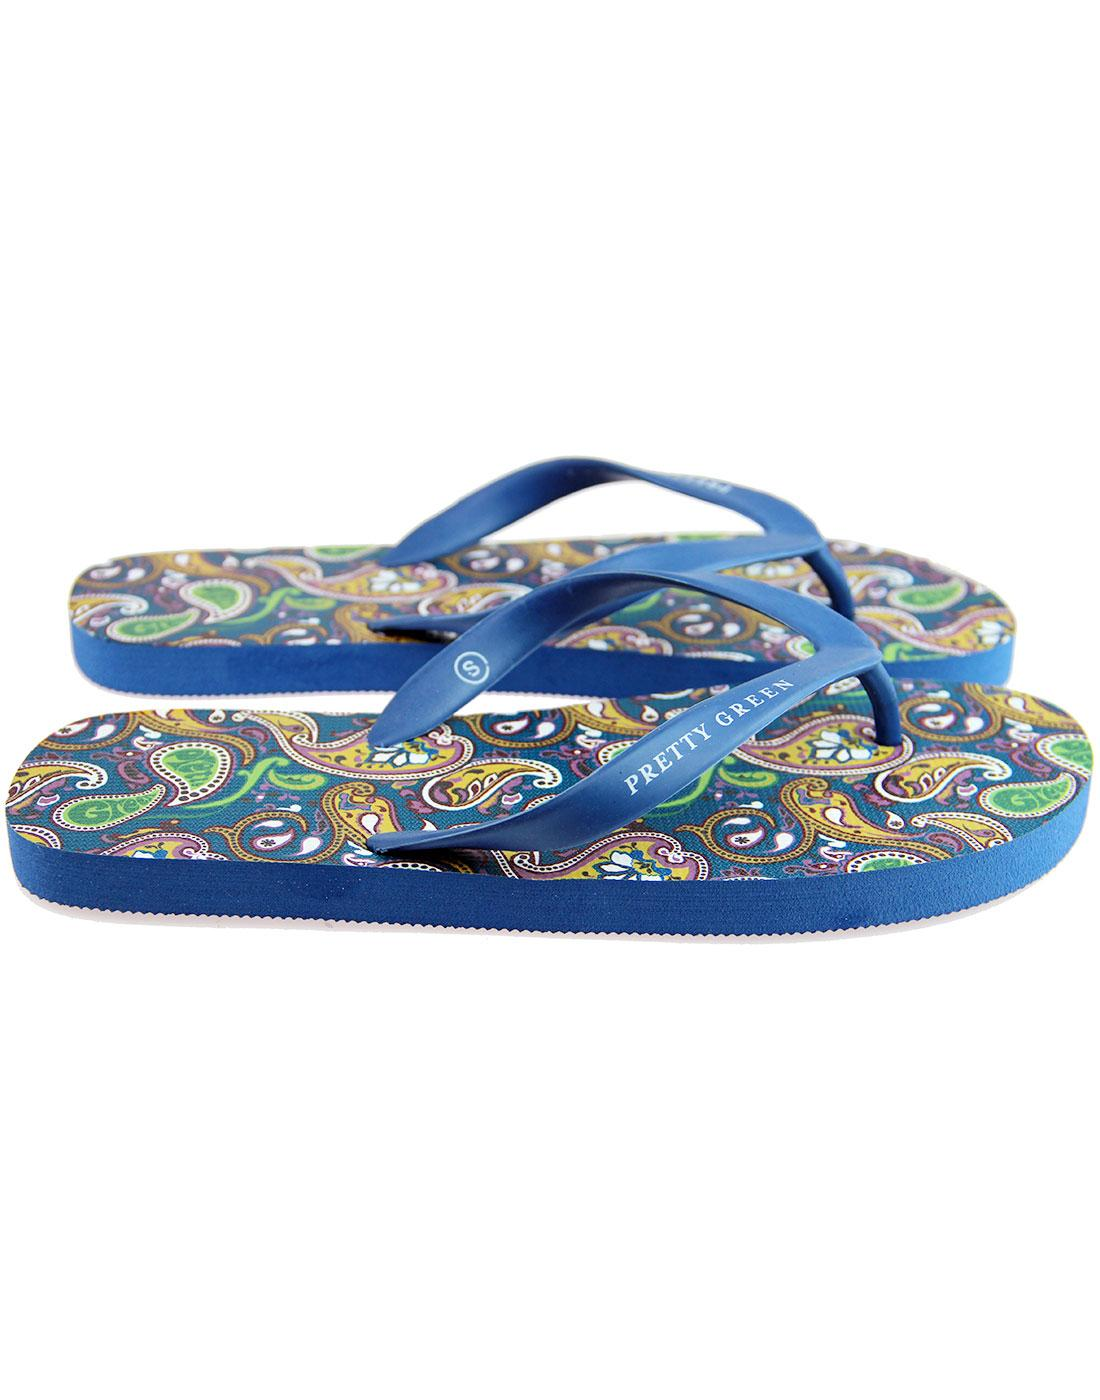 0d51a5ebd PRETTY GREEN Signature 1960 s Paisley Flip Flops in Blue